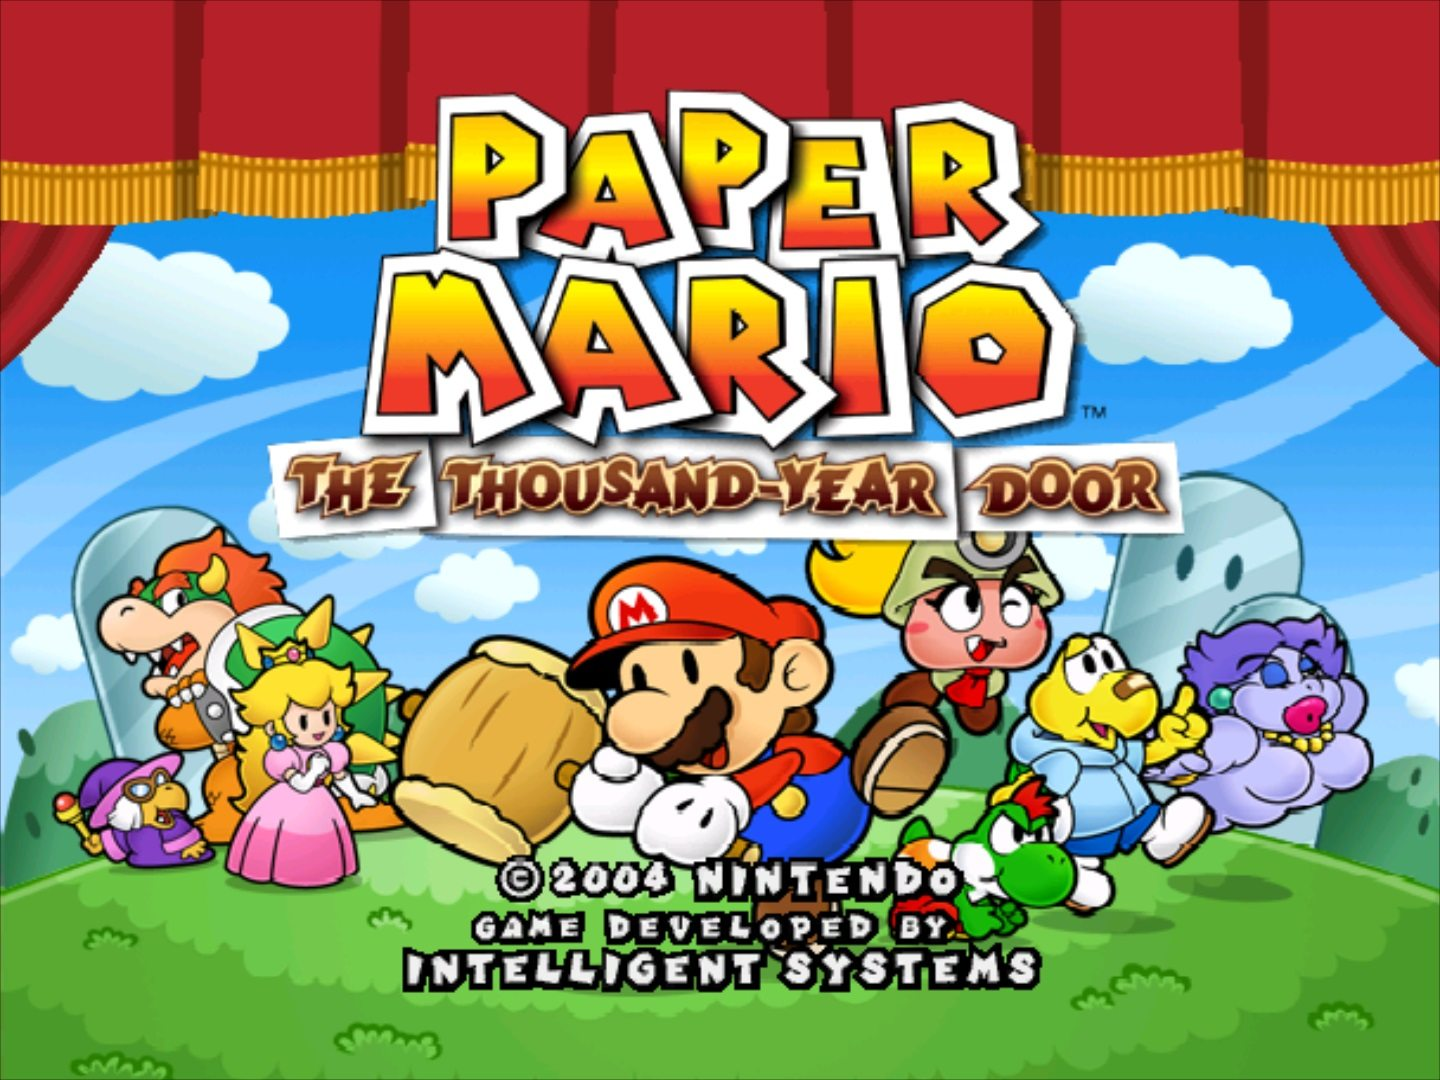 RetroNight: Paper Mario The Thousand-Year Door